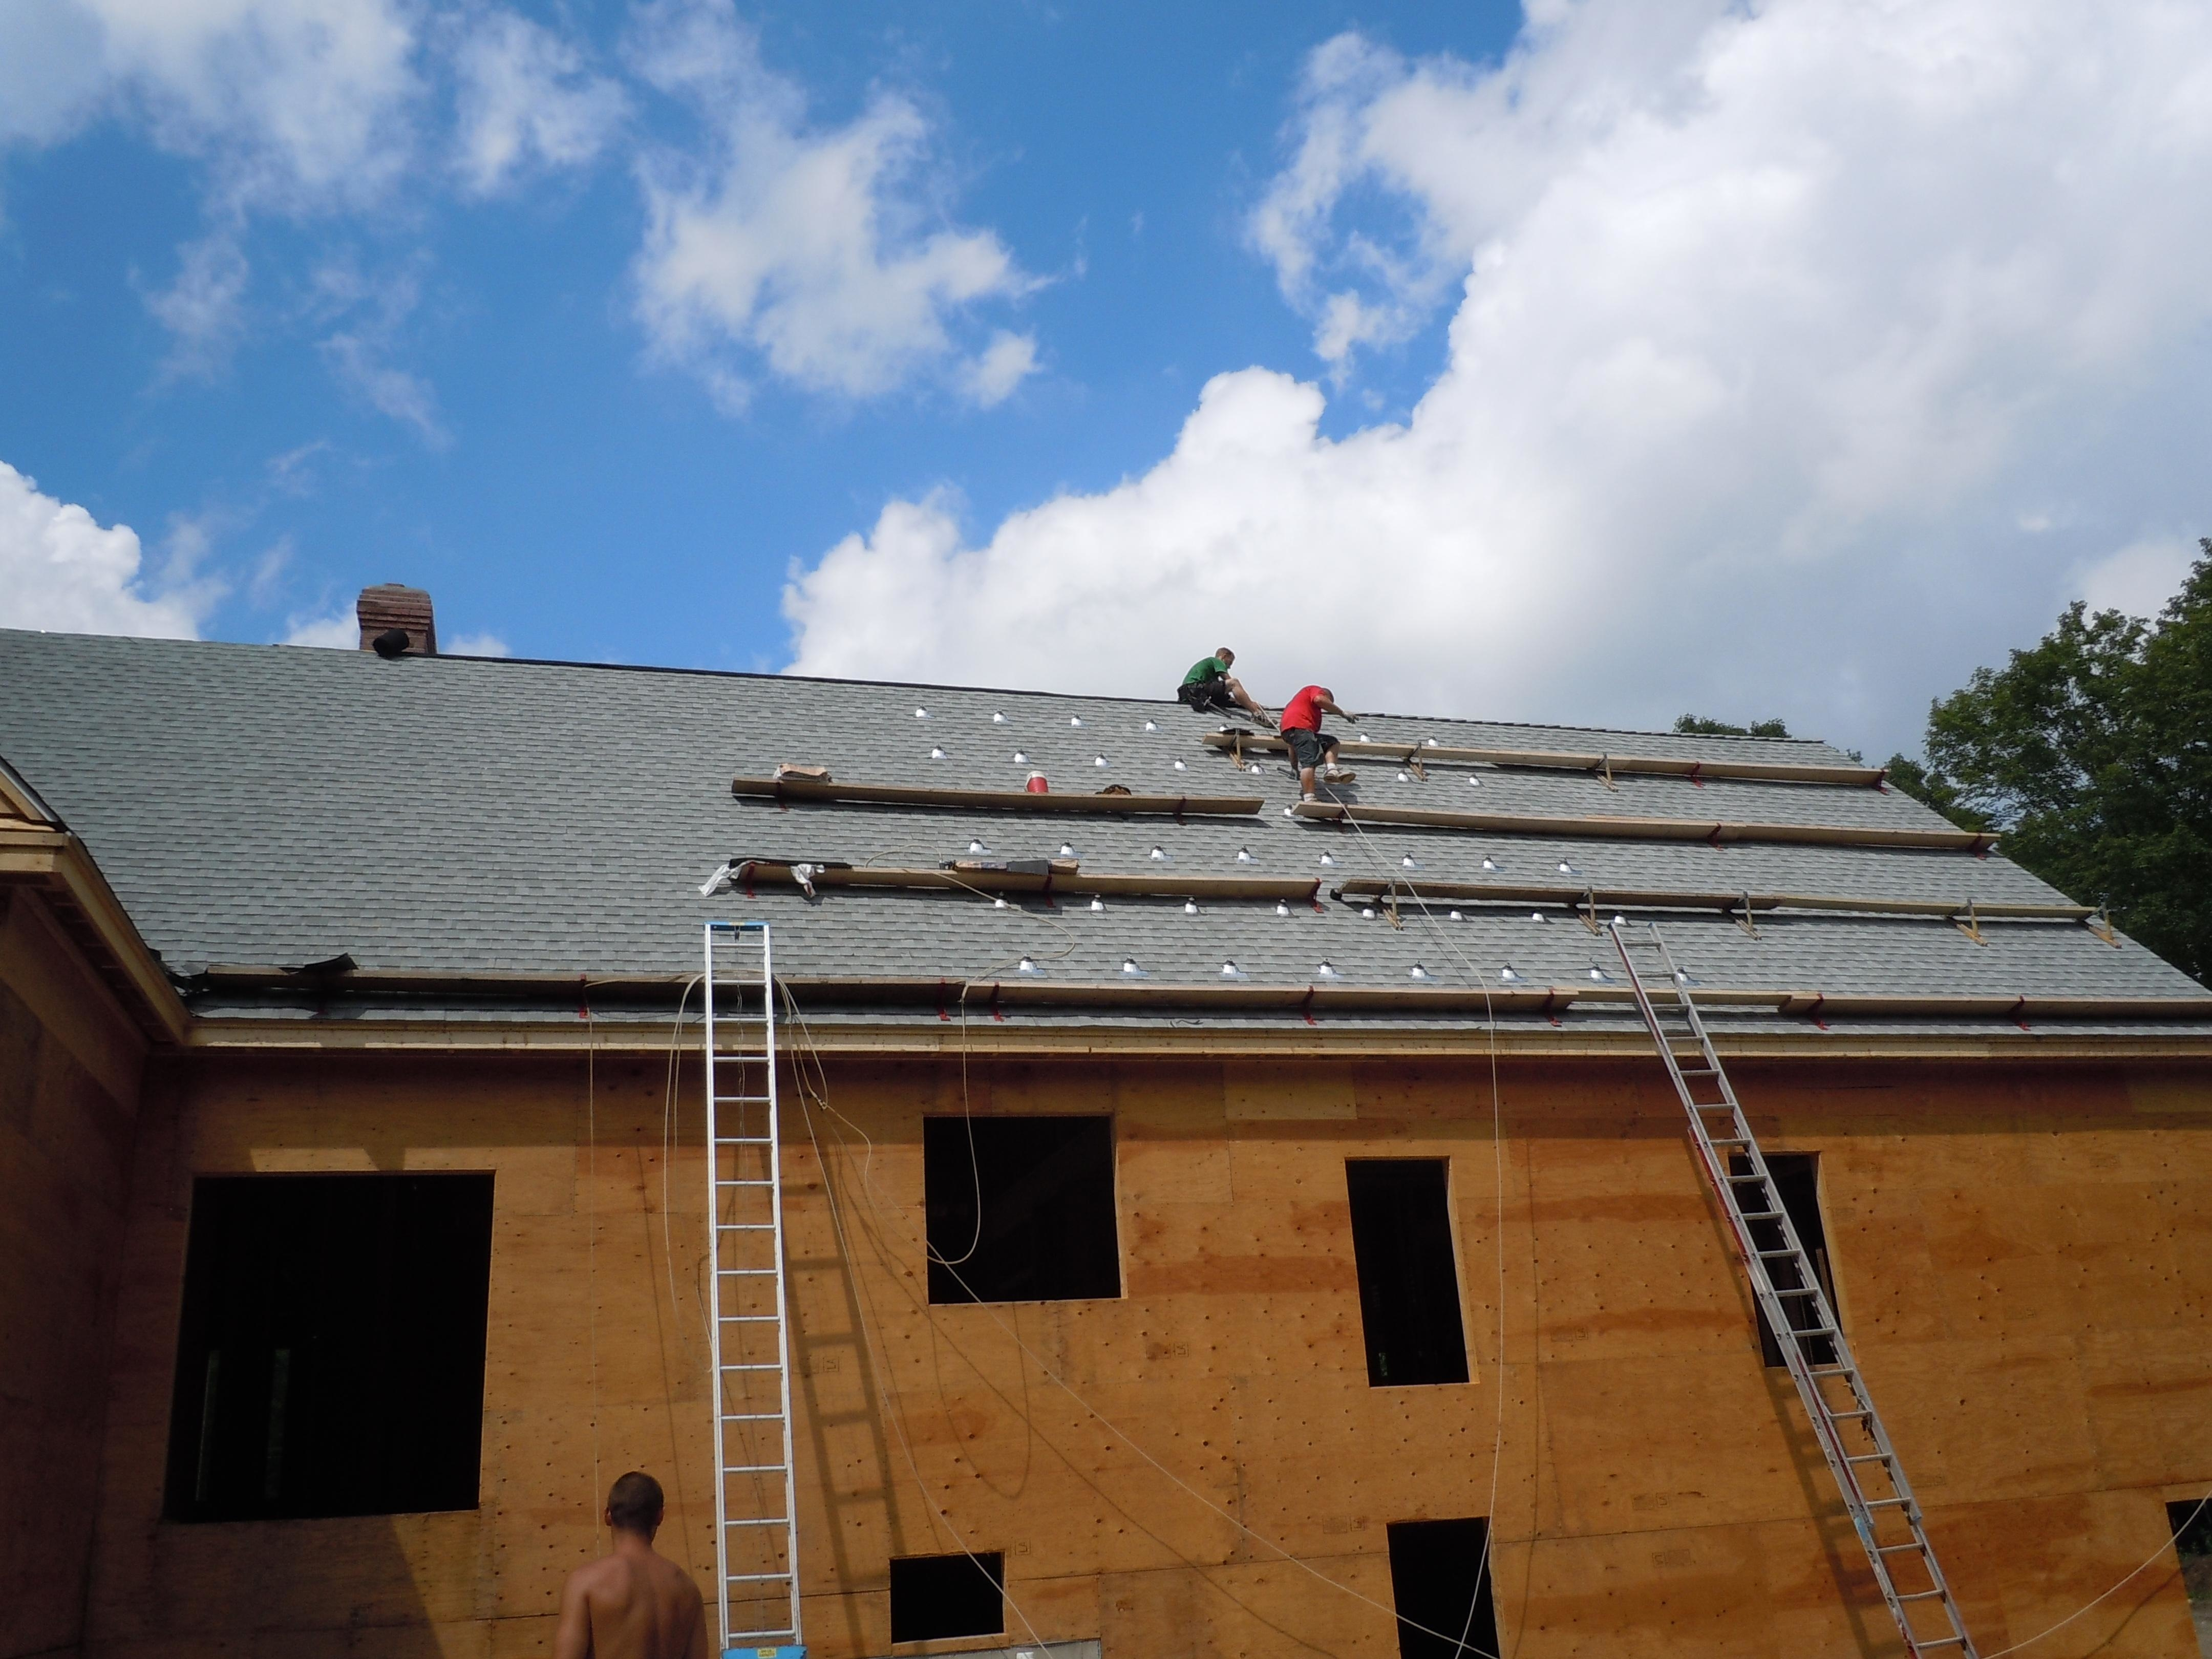 On Top Roofing In Worcester, Ma 01607  Chamberofcommercecom. Home Heating Oil Prices Nova Scotia. Online Press Release Service Bar D Durango. Need A Business Loan With Bad Credit. Medicare Cancer Coverage Hdfc Auto Loan Status. How To Treat Prostate Cancer. Best Project Management Practices. Liposuction Cost In Florida Time Warner Ubee. Local Search For Dentists Plumbing San Diego